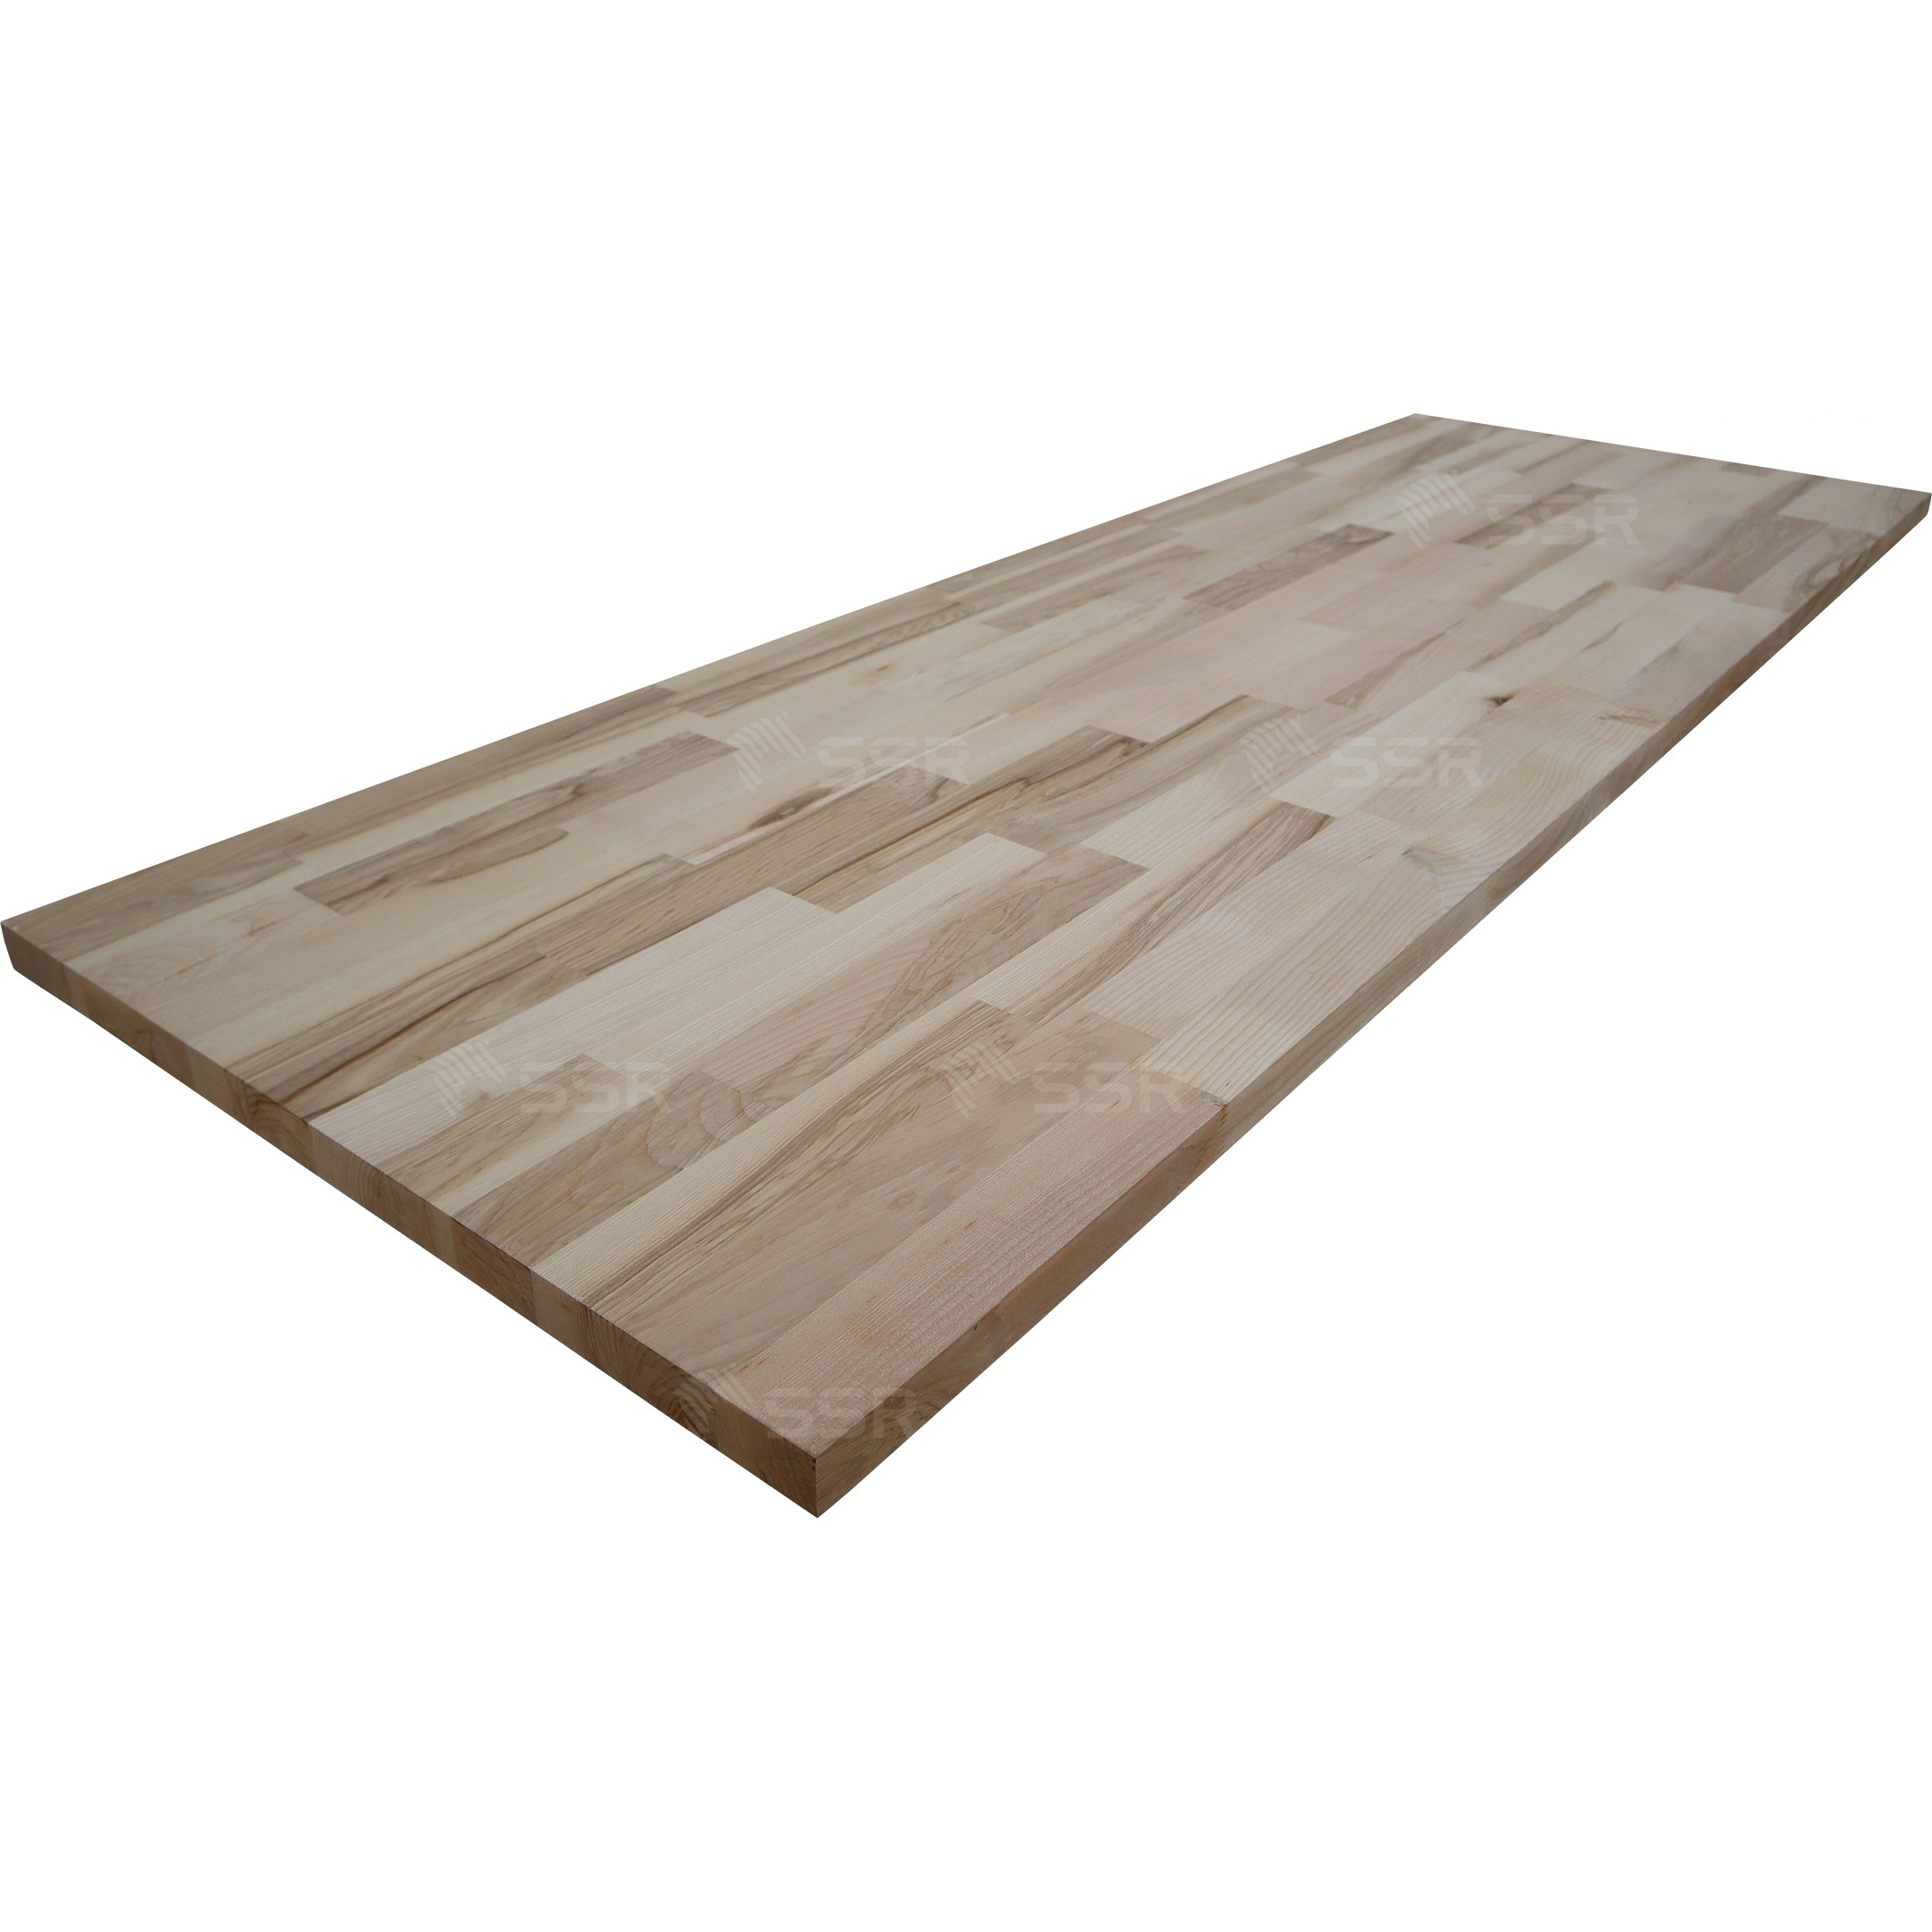 Ash Wood Fraxinus Solid Wood Hard Wood Finger Joint Wood joint Wood Plank Wood Panel Wood Board Wood Industry Global Commerce Trade International Wood Product Supplier Wholesale FSC Certified International Business Import Export